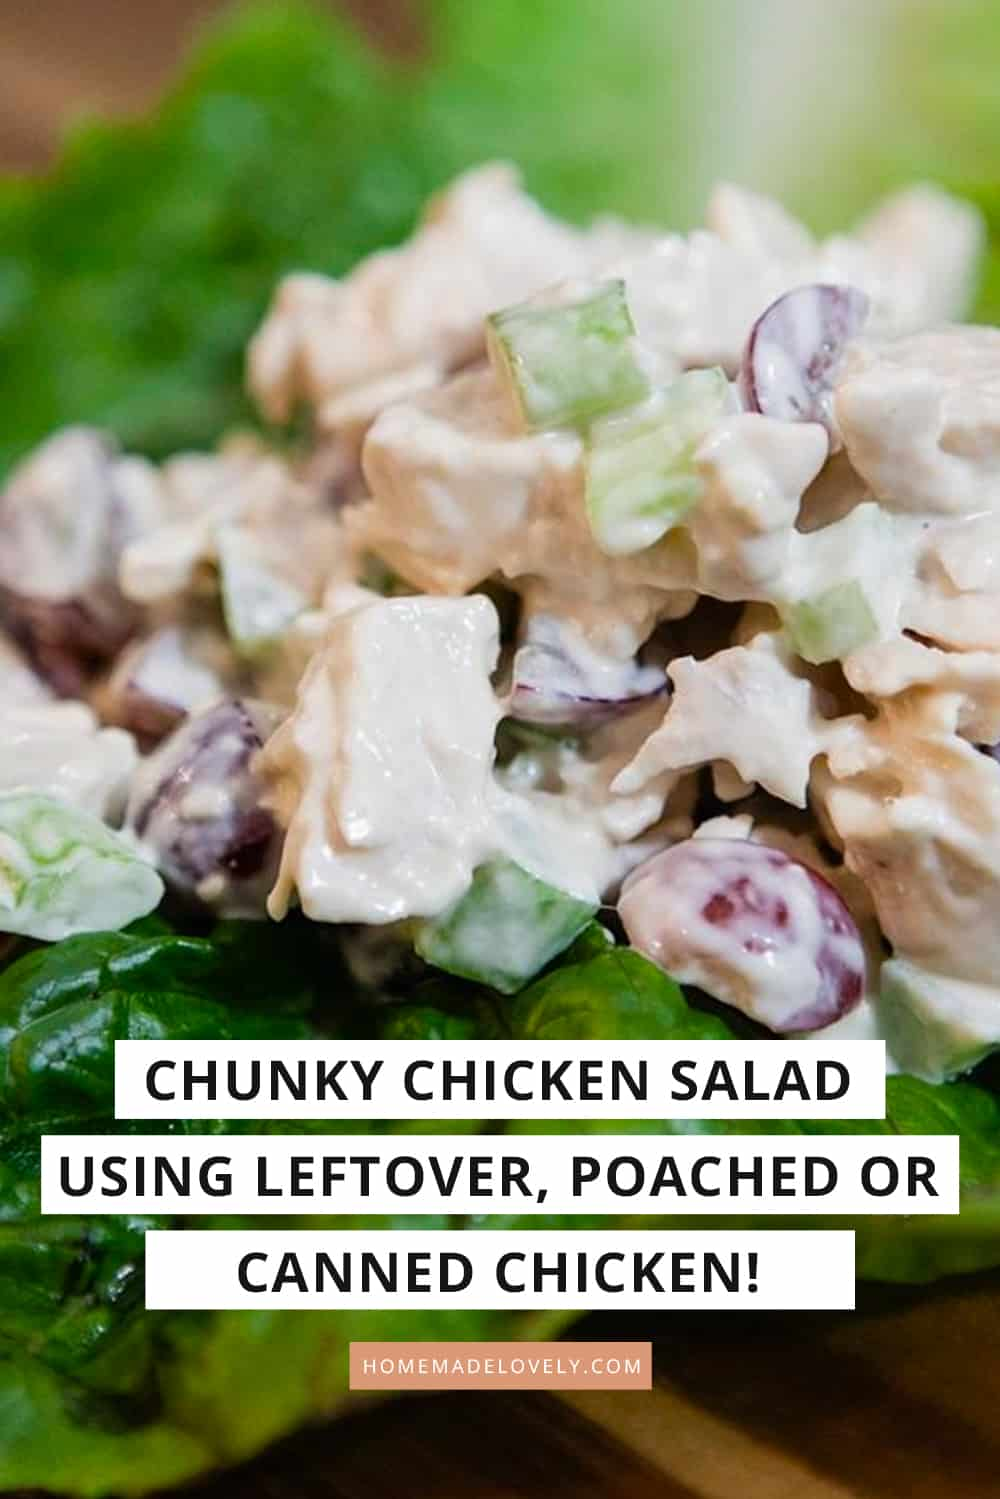 chicken salad on lettuce with text overlay